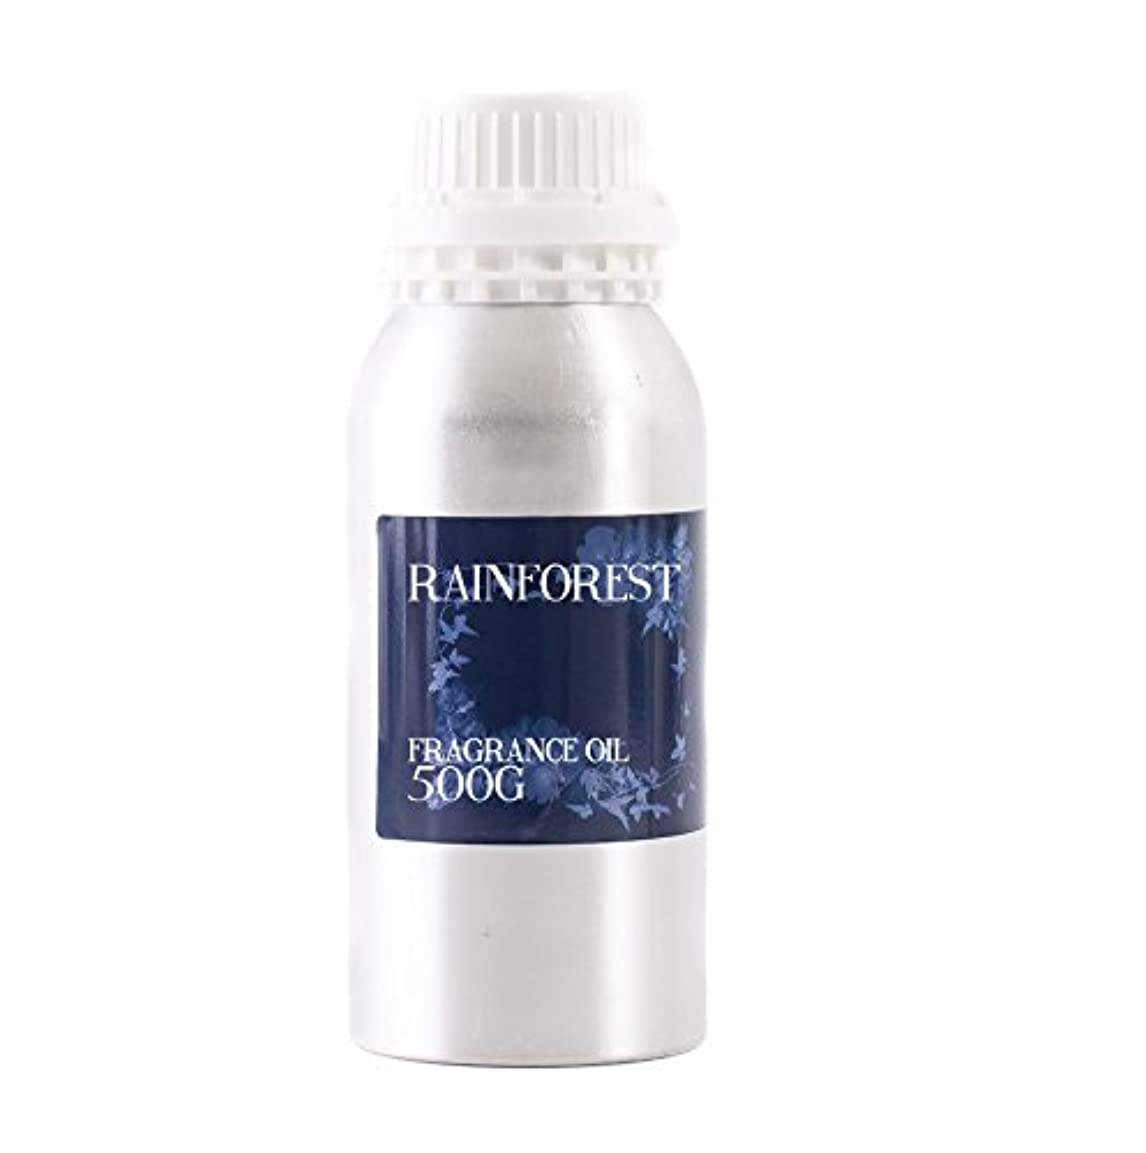 スコットランド人国籍オンスMystic Moments | Rainforest Fragrance Oil - 500g